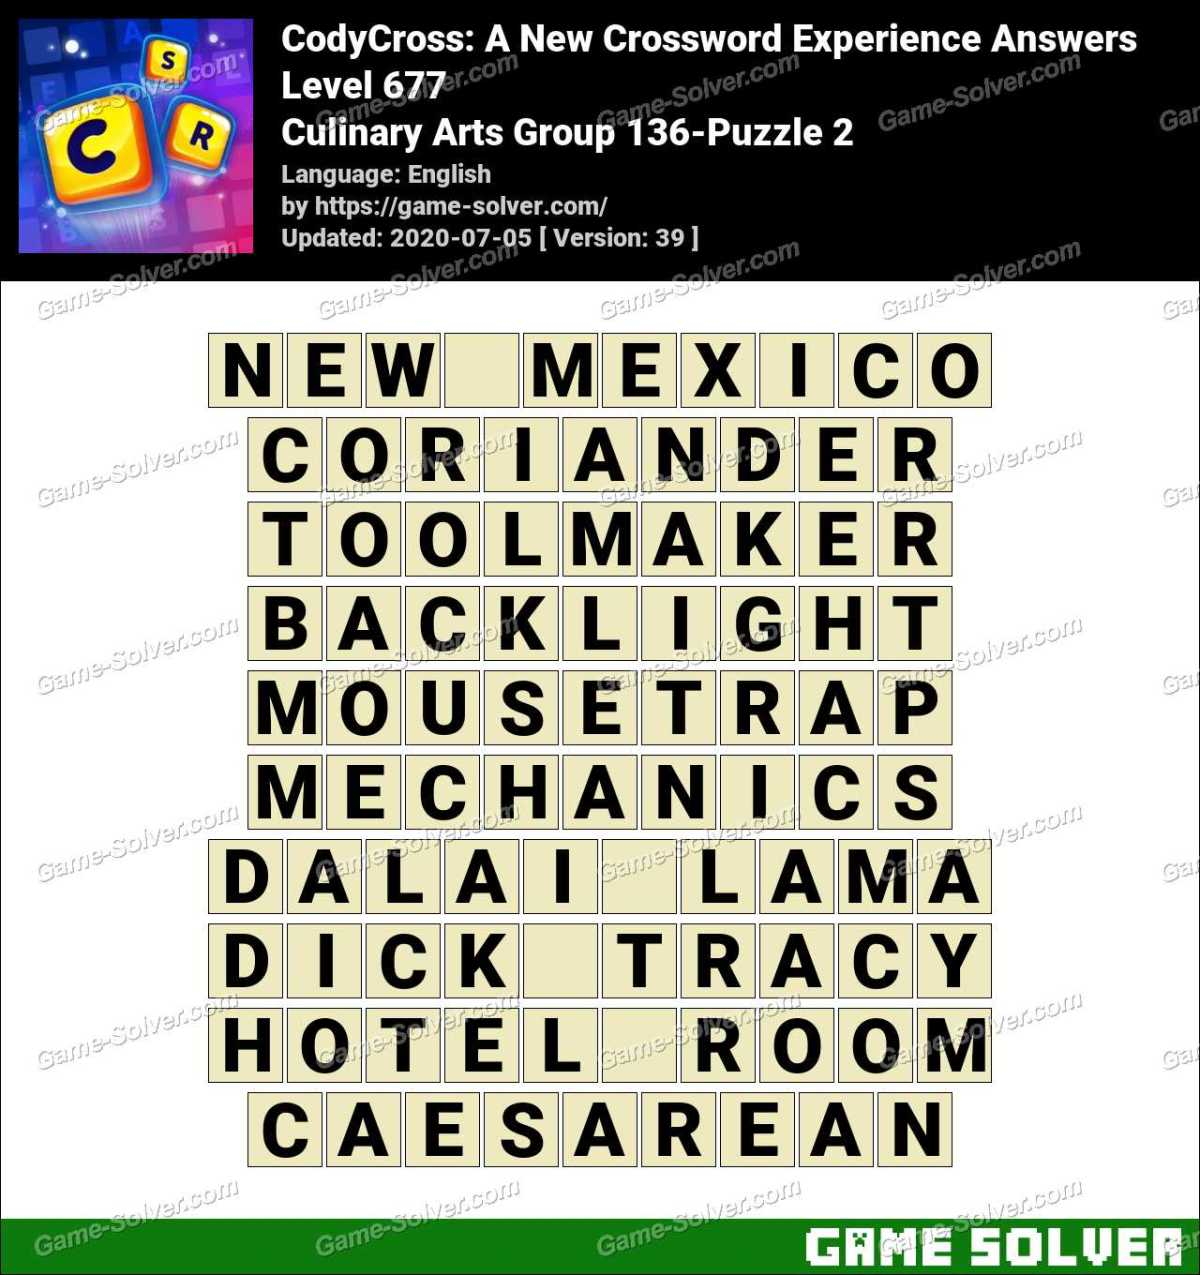 CodyCross Culinary Arts Group 136-Puzzle 2 Answers